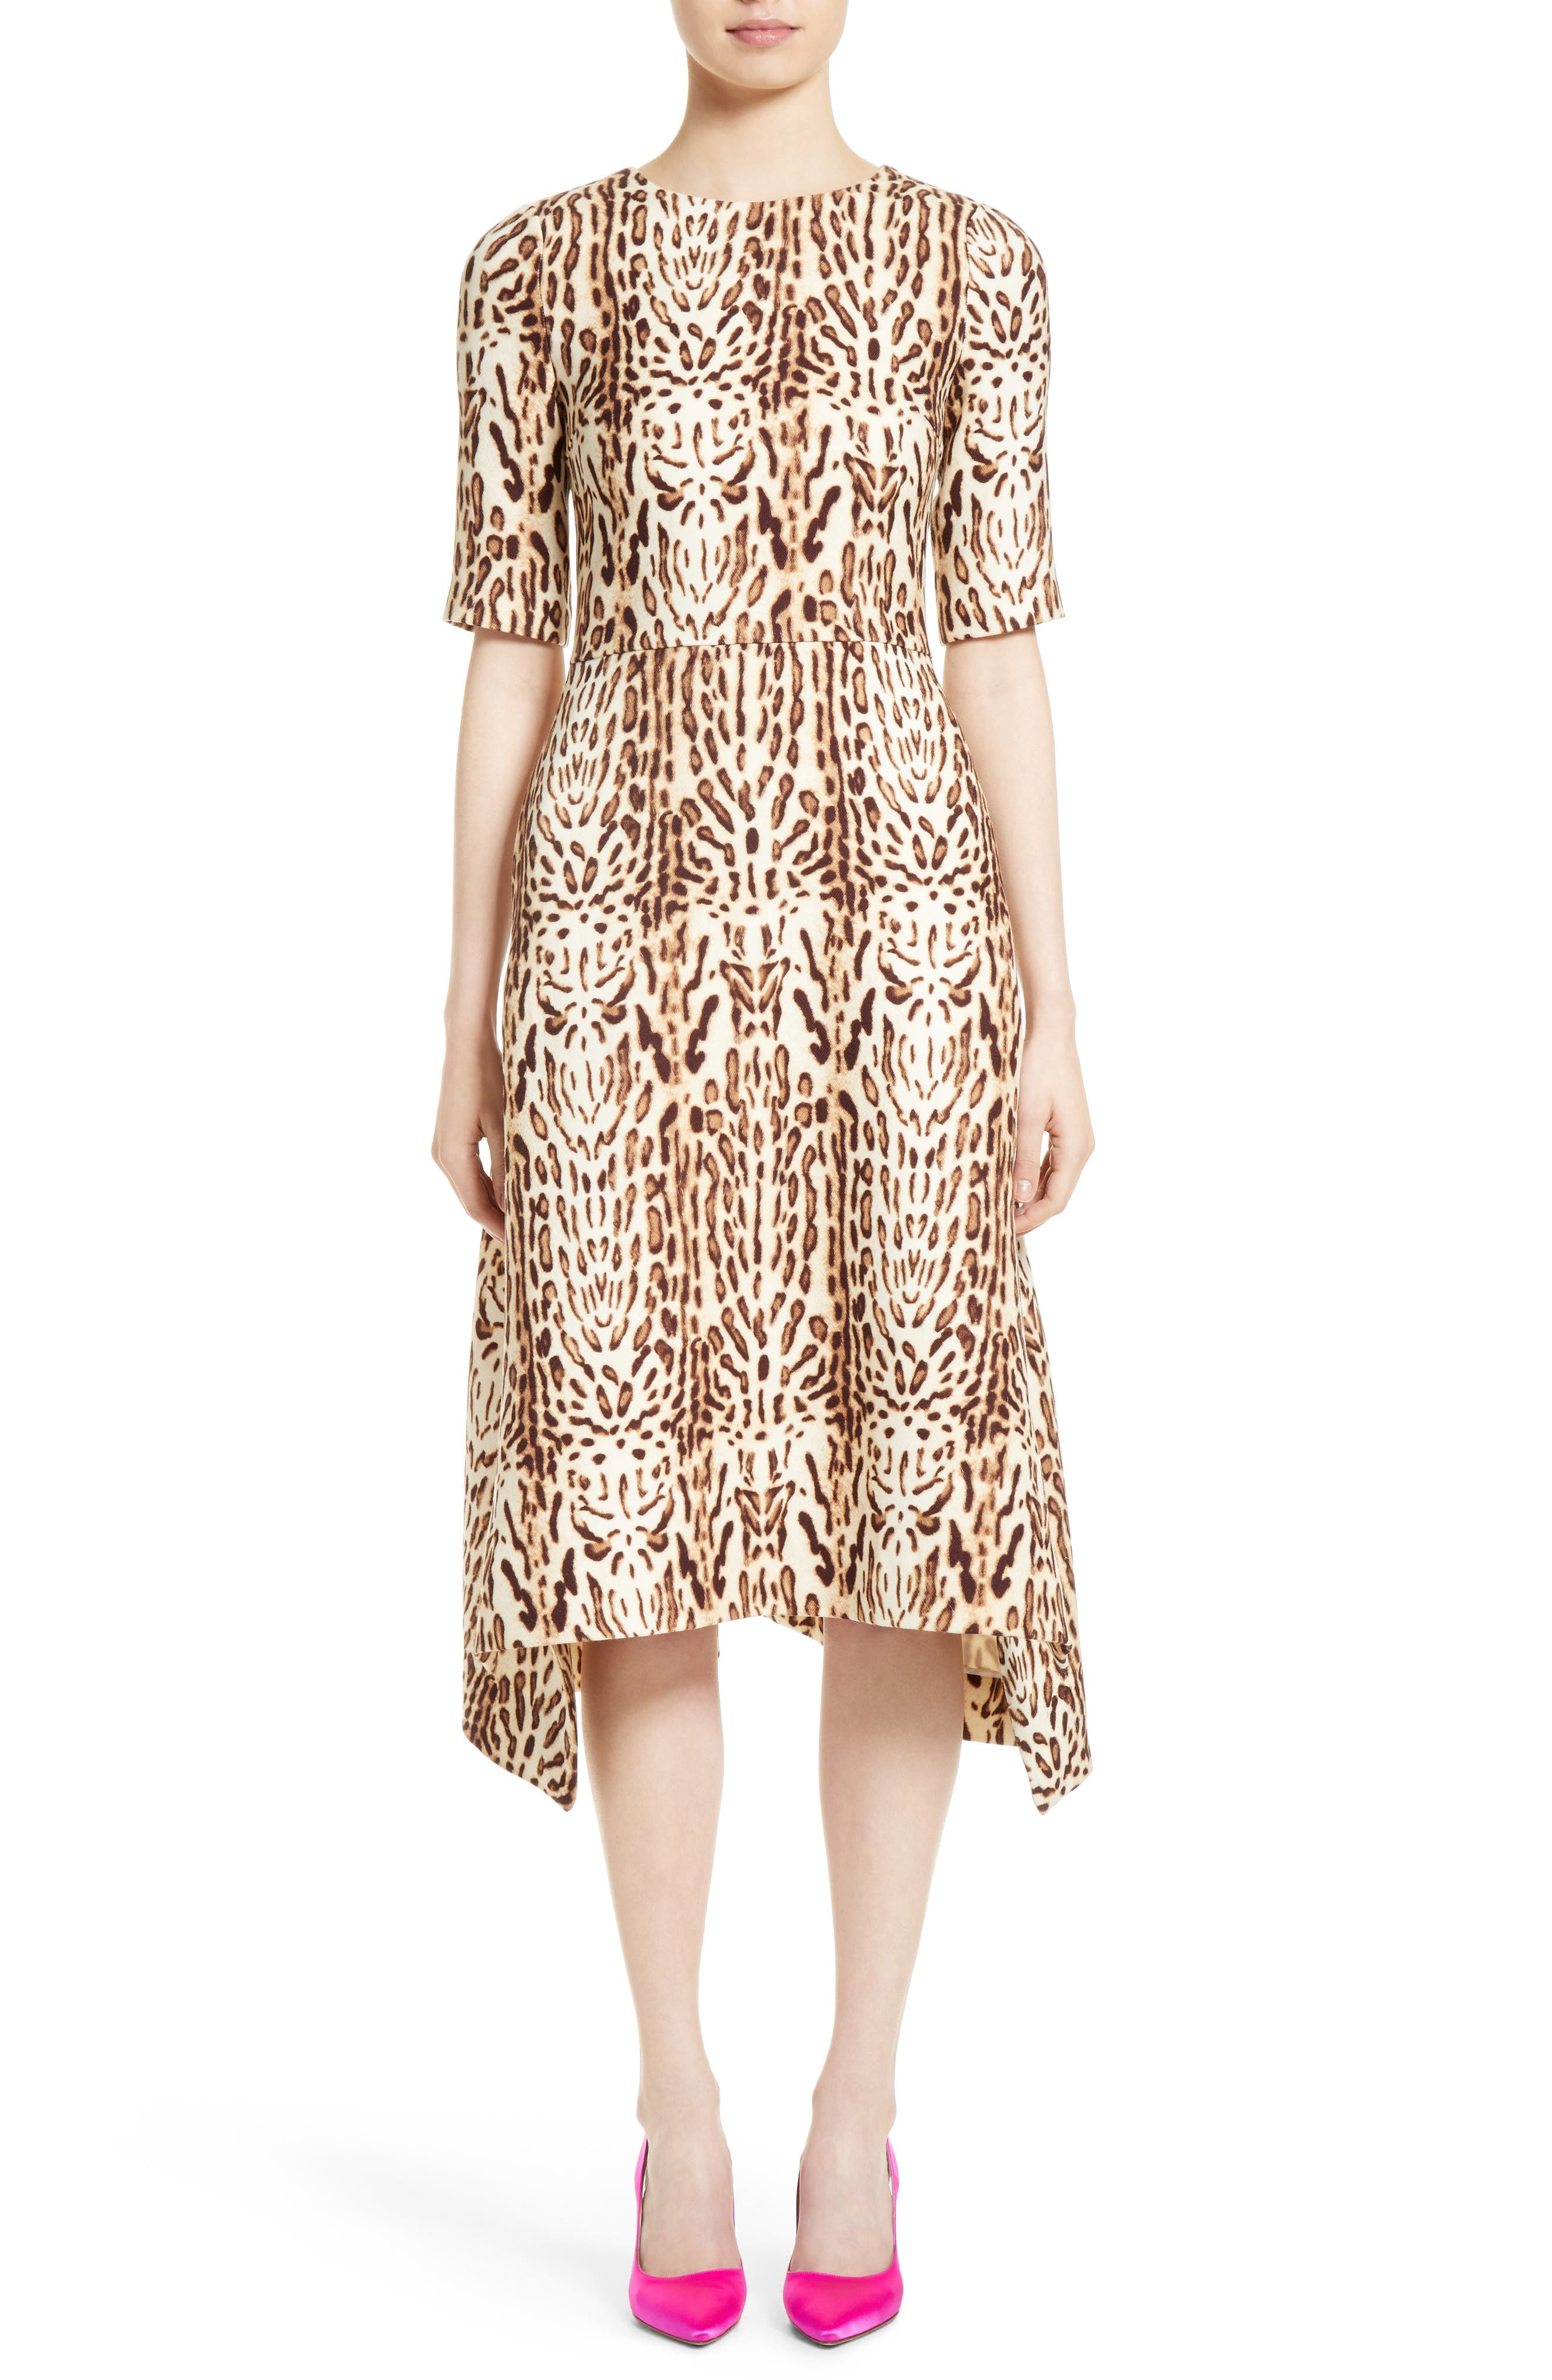 Alternate Image 1 Selected - Adam Lippes Ocelot Print Wool Midi Dress